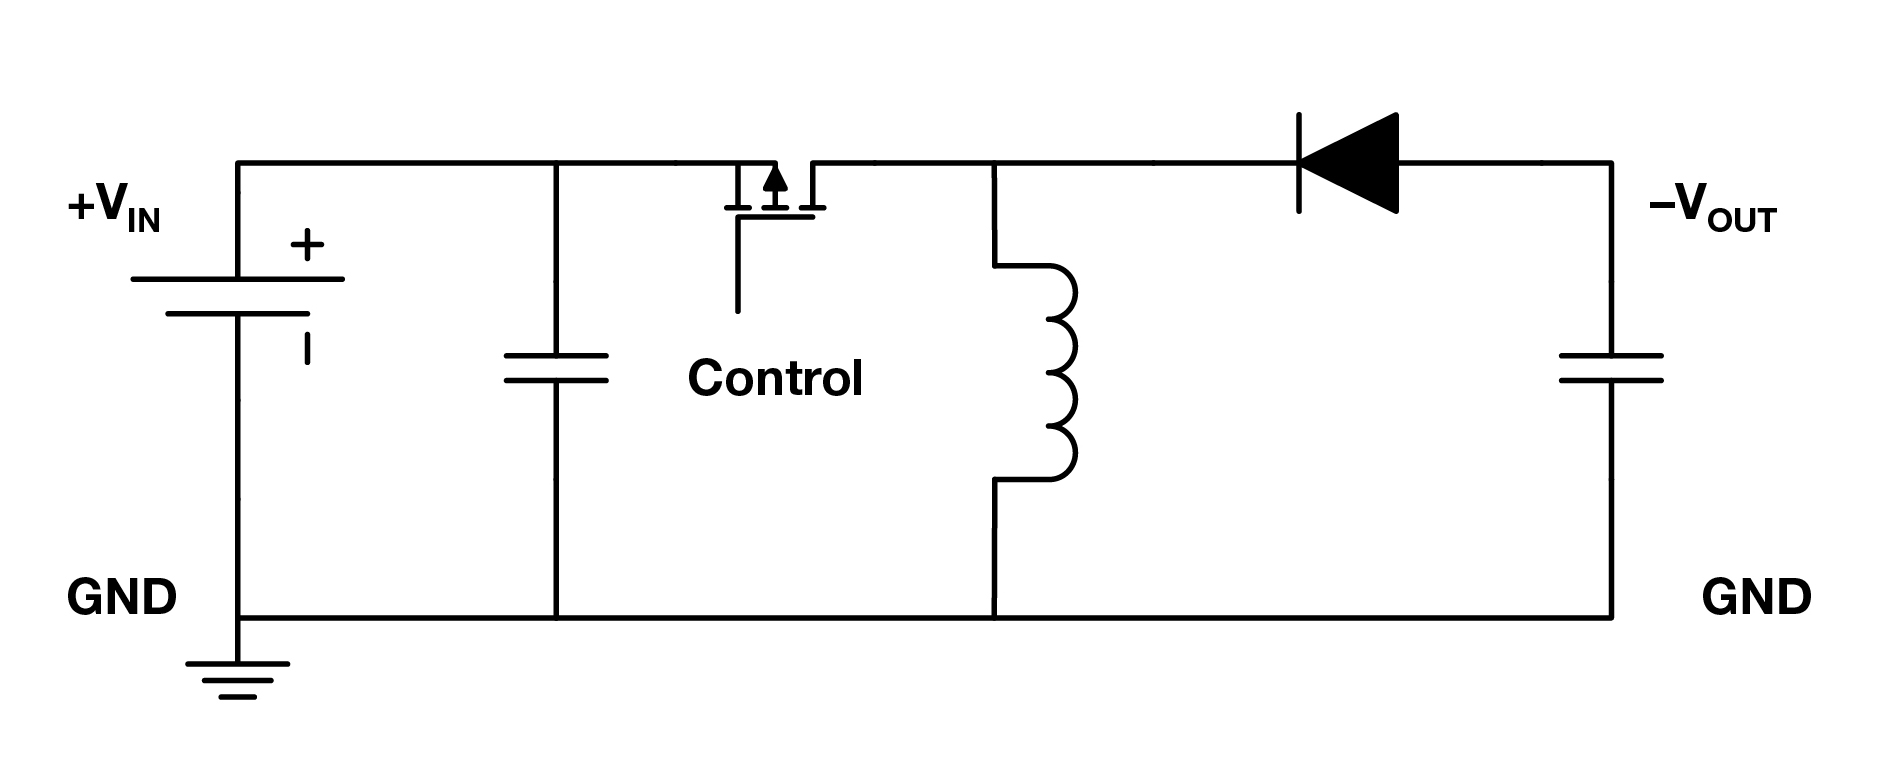 Power Tips Dont Be Negative On Supplies House Voltage Regulator Circuit Simple Schematic Of A Buck Boost Converter